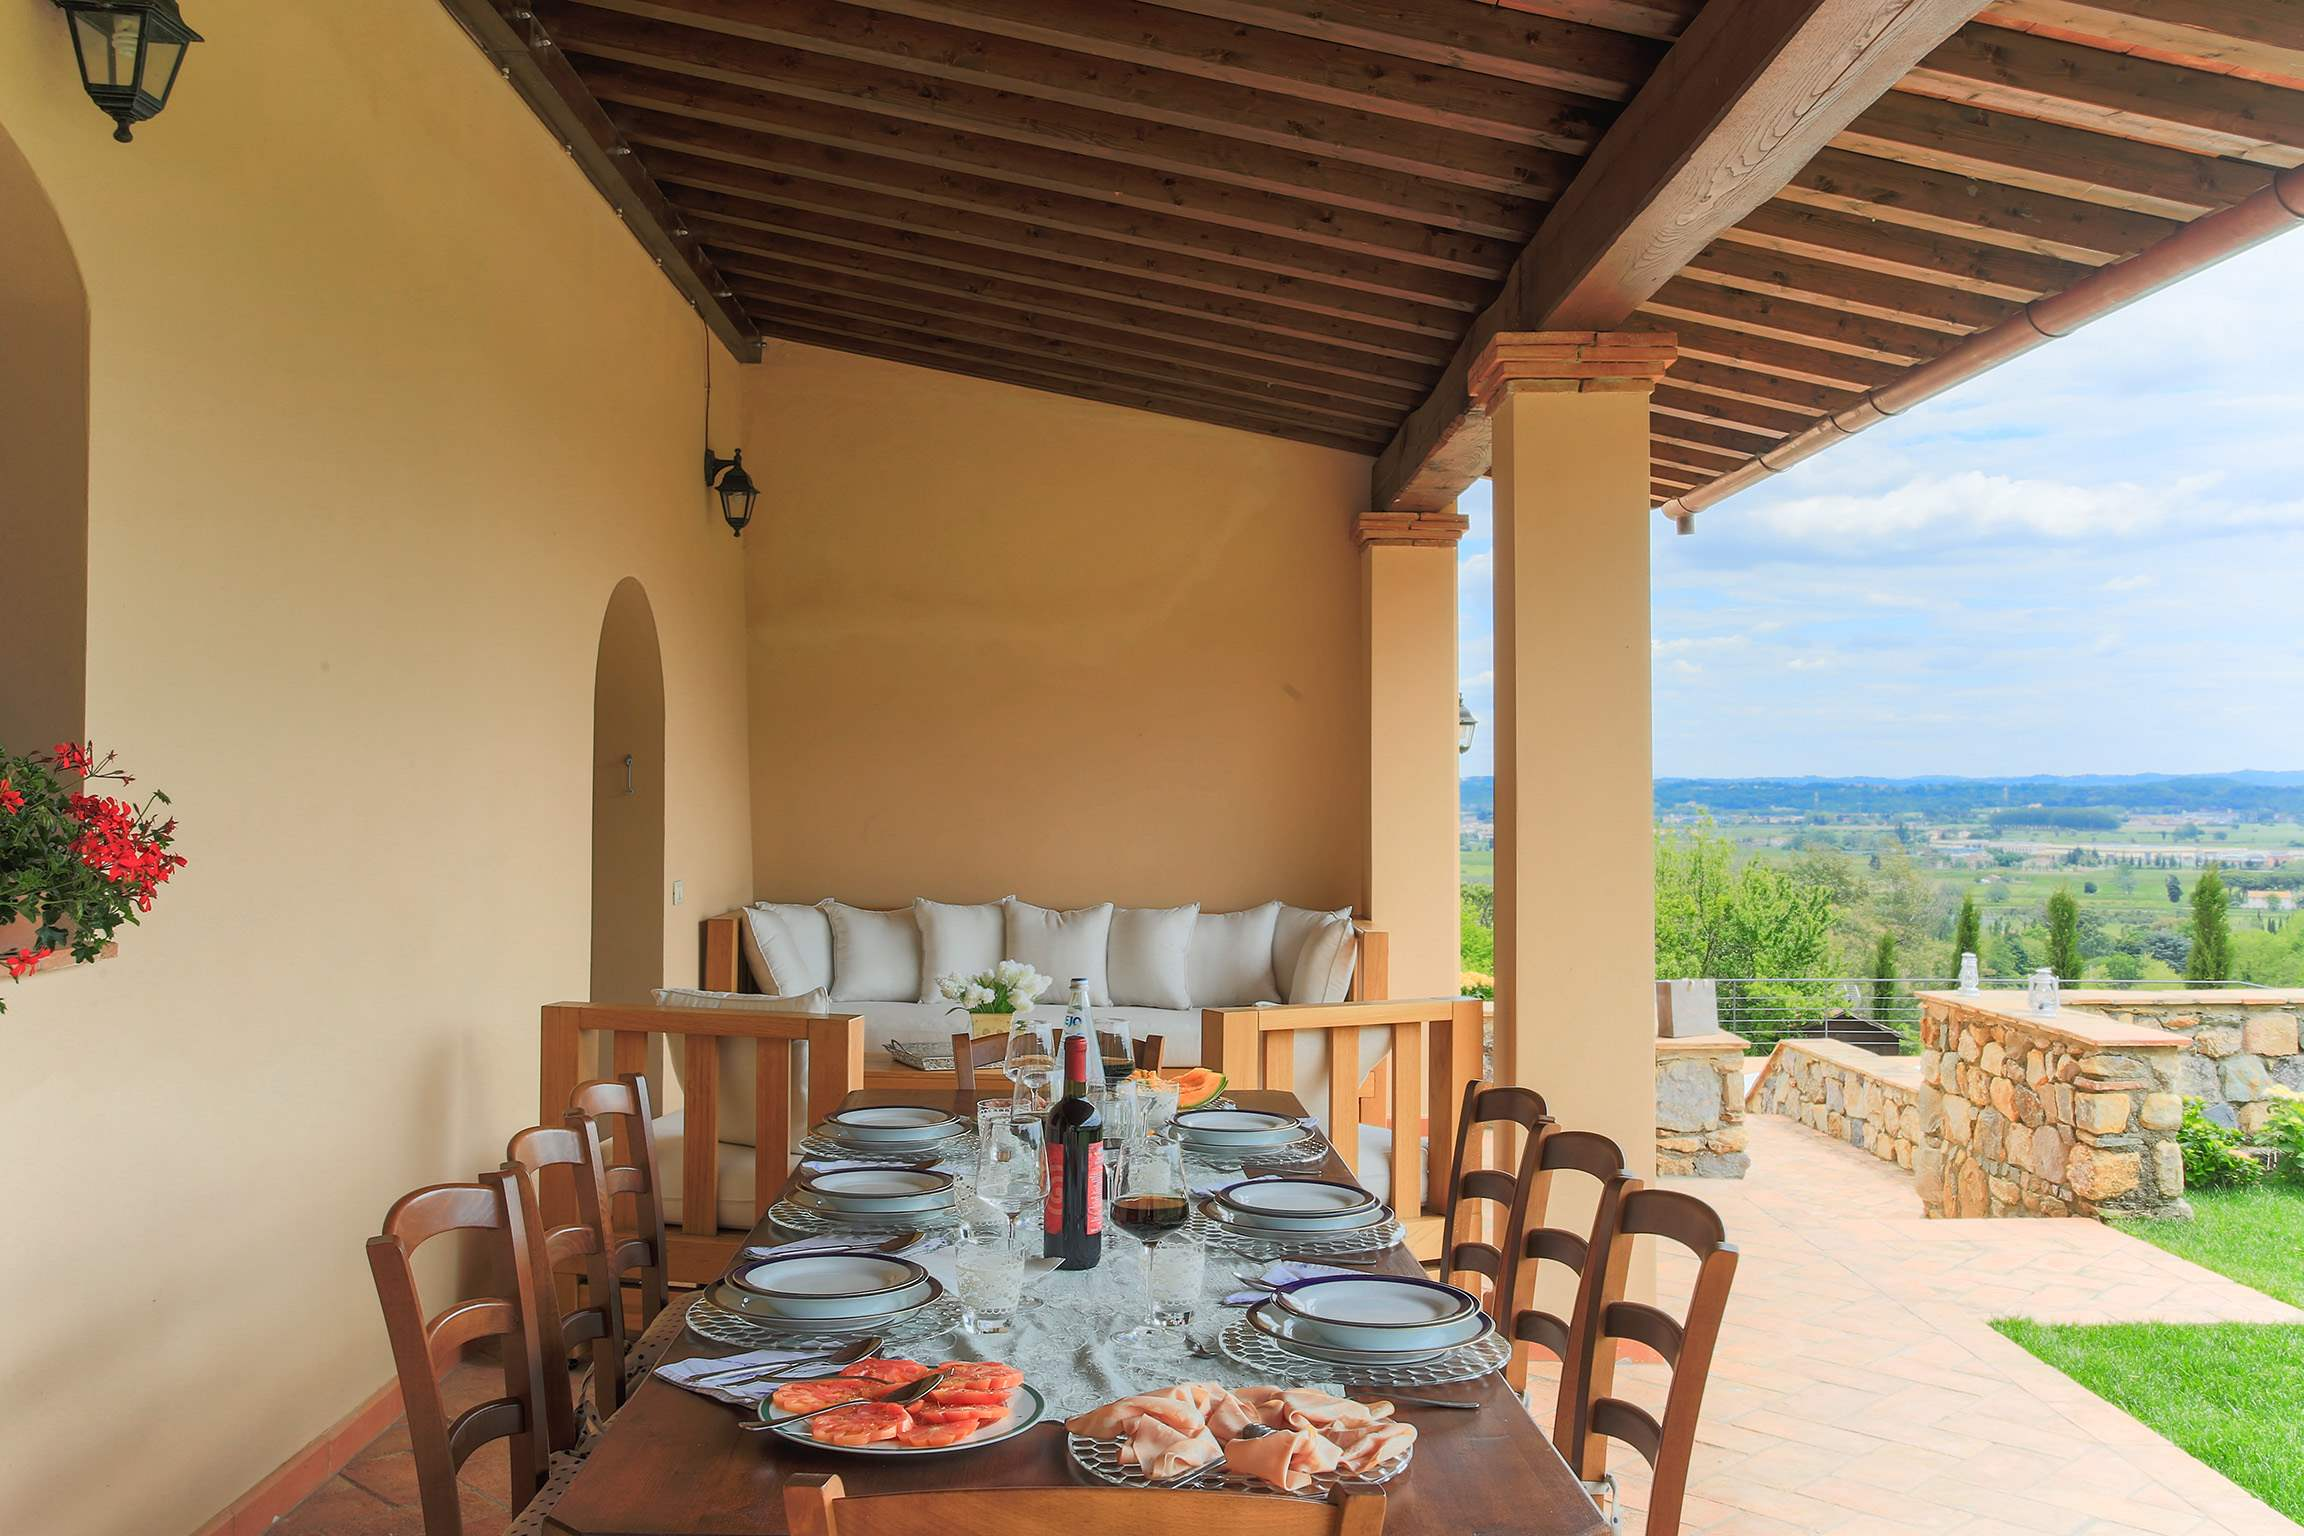 Casa Di Dante, 3 bedroom villa in North Tuscany - Pisa & Lucca Area, Tuscany Photo #5